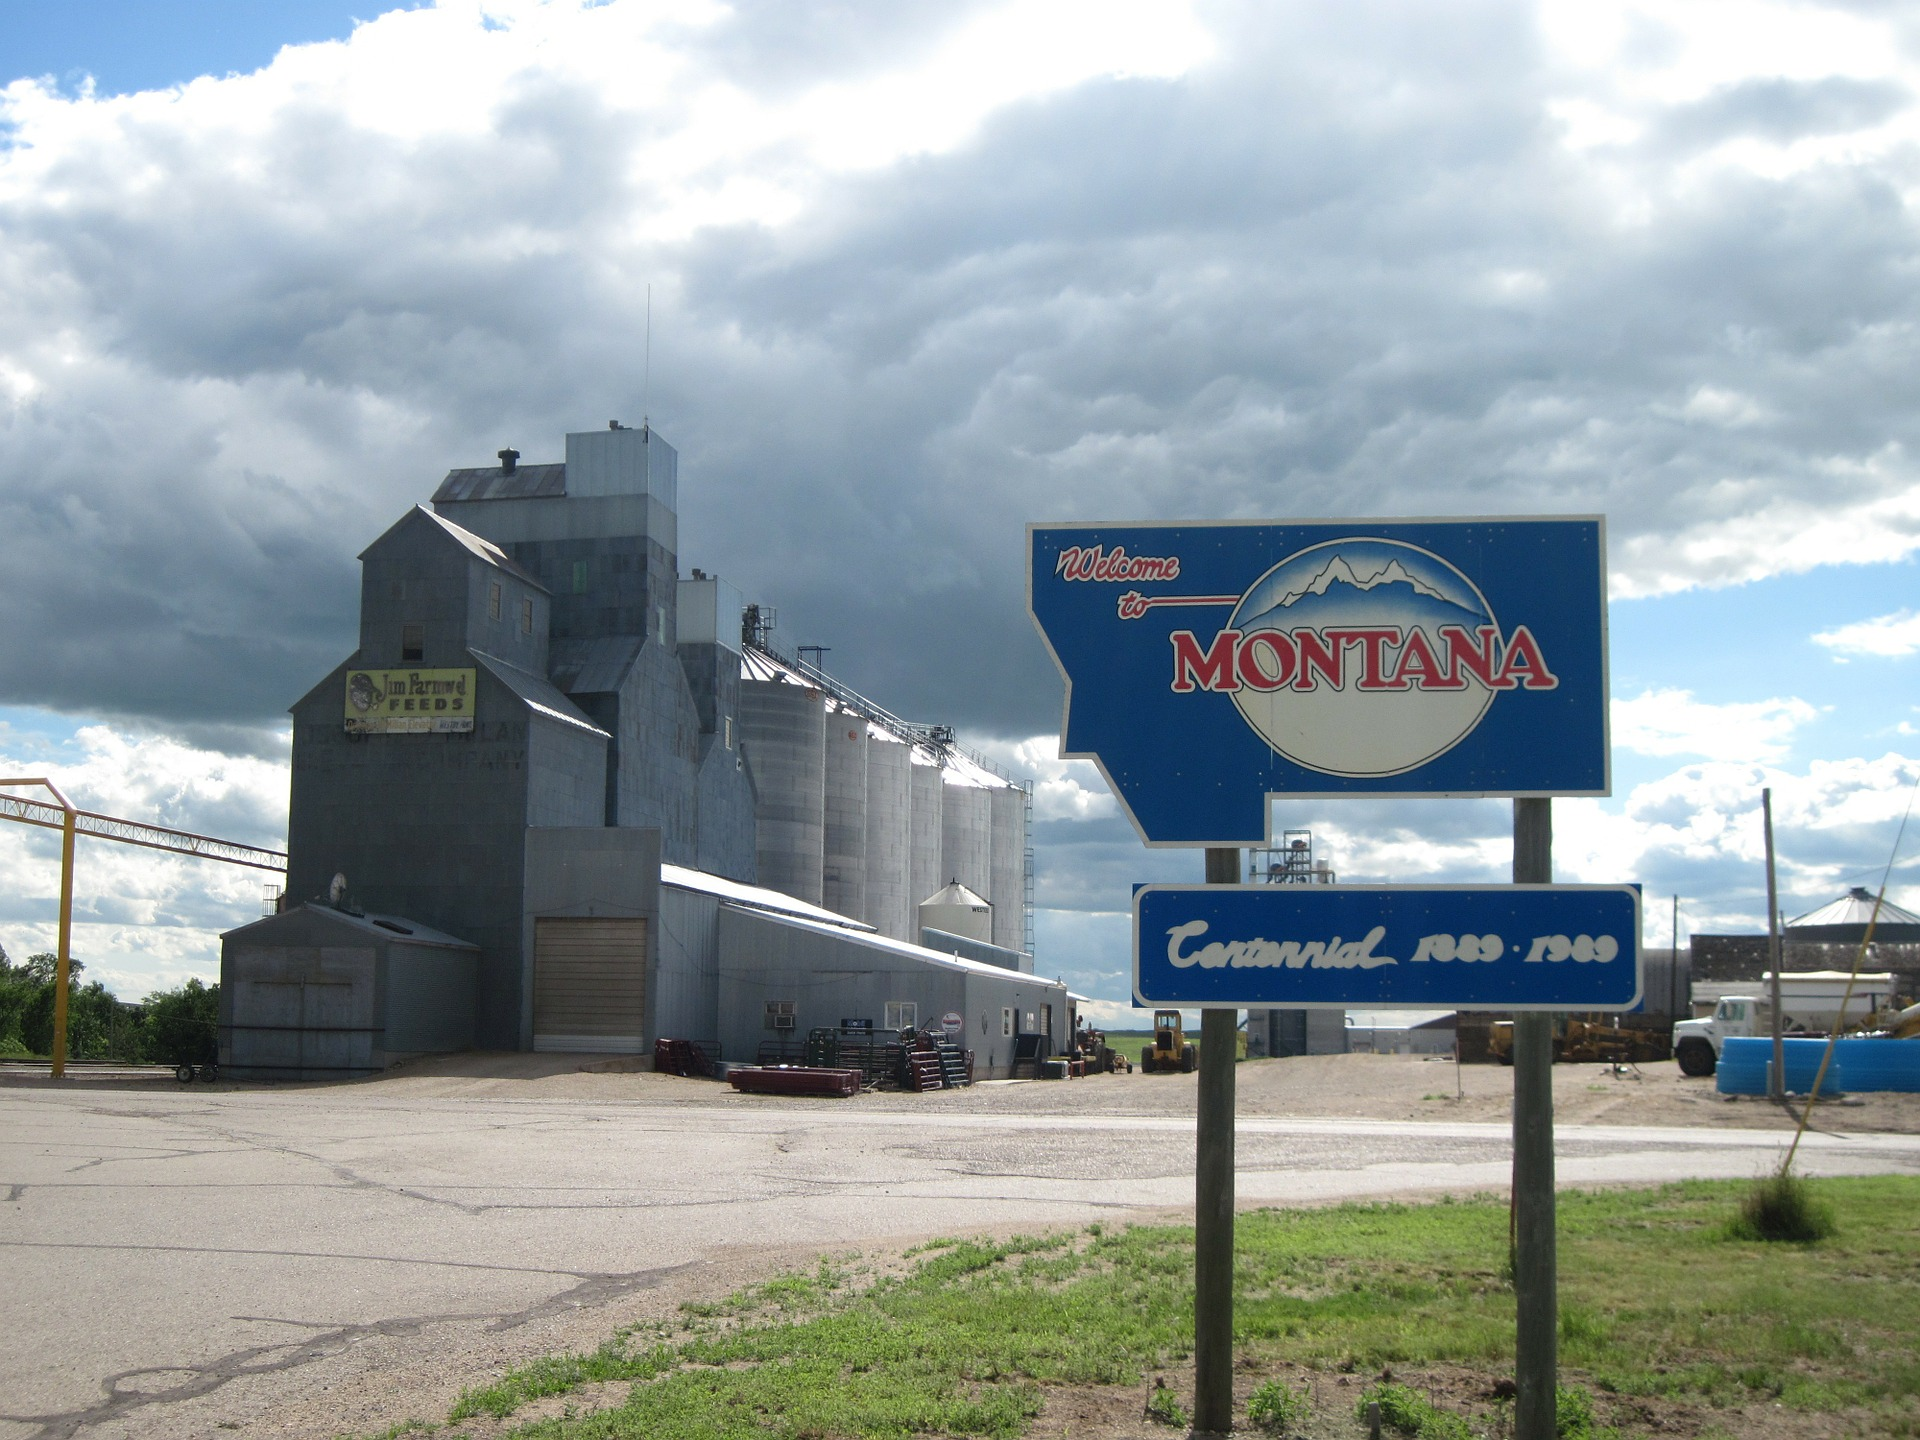 Montana Slot Machine Casino Gambling: Welcome to Montana!